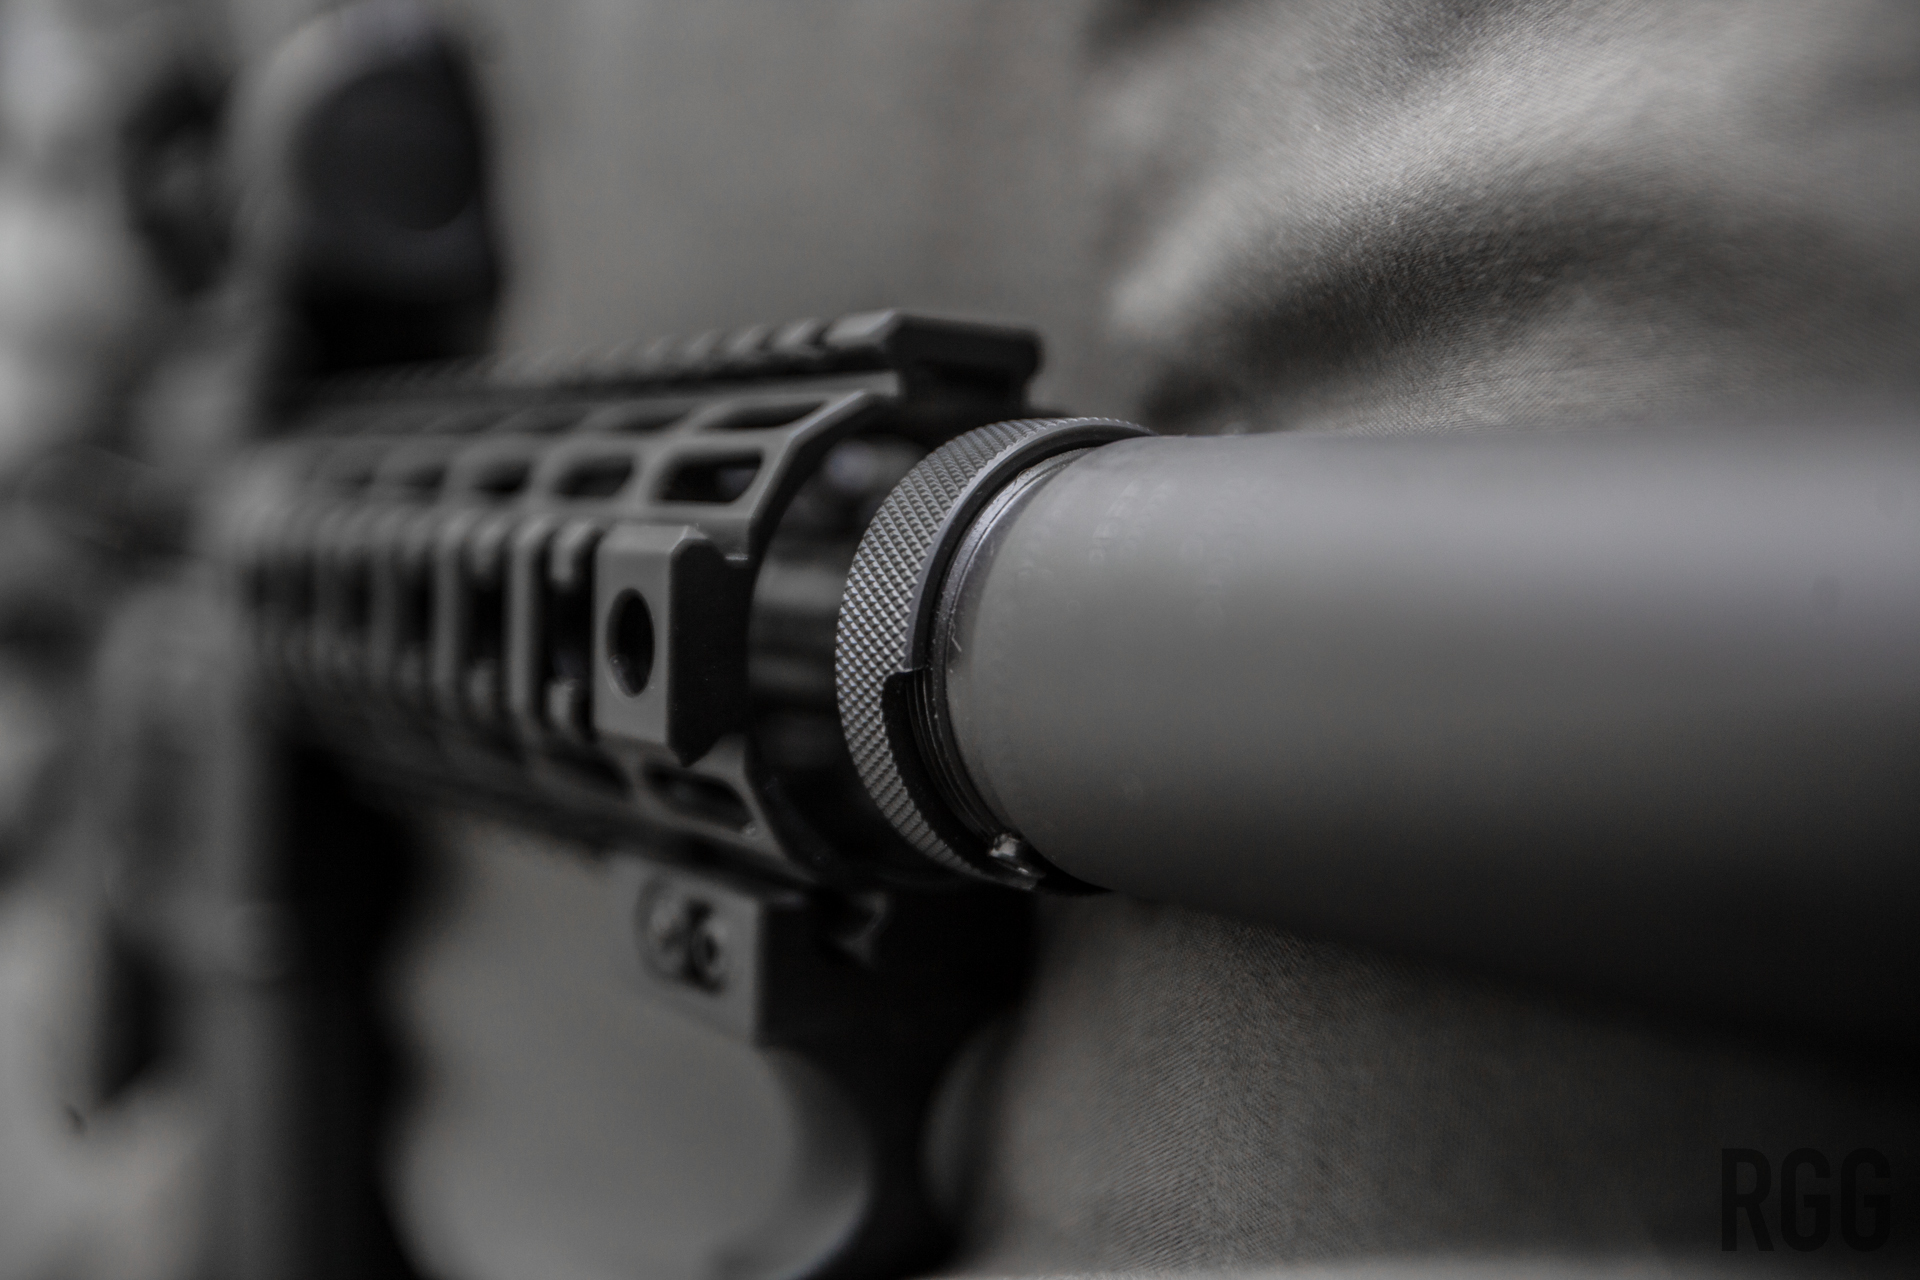 The quick detatch mount on a Silencerco Specwar 762 suppressor